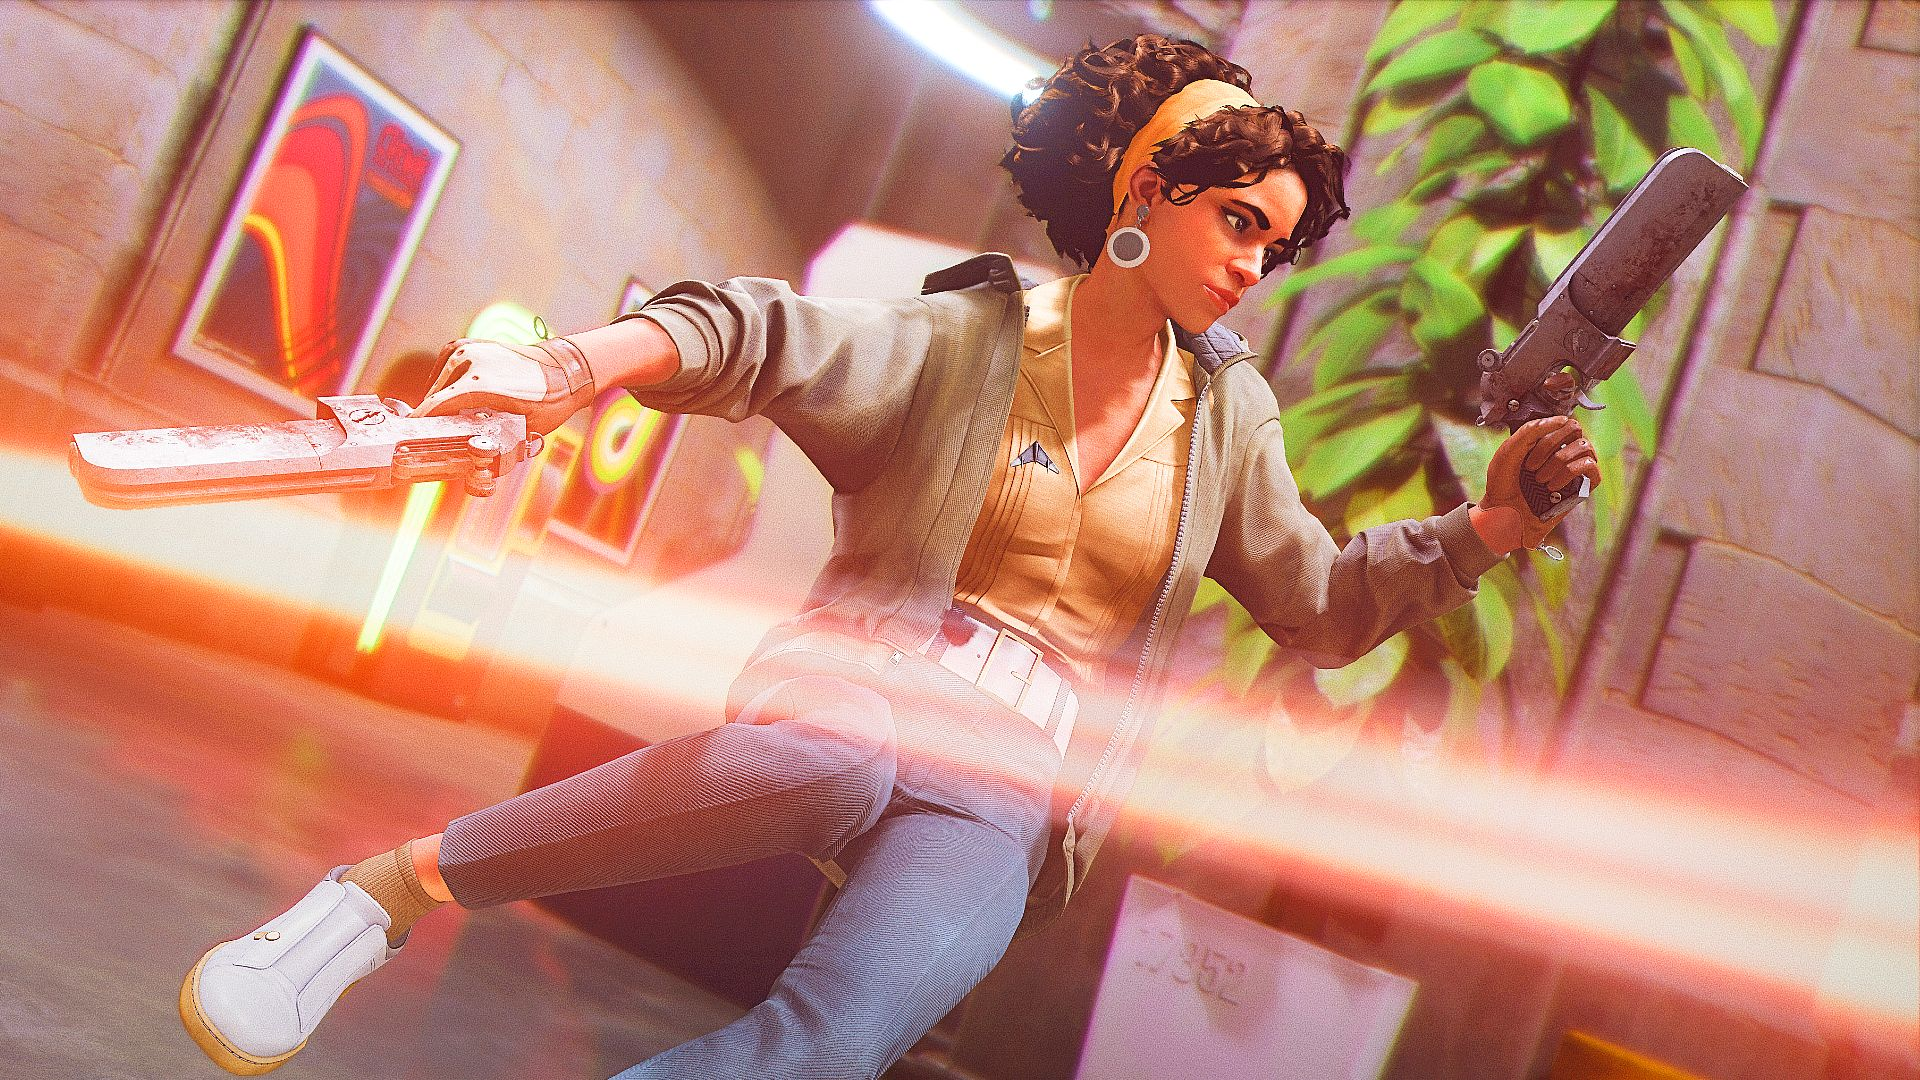 Deathloop has mixed reviews on Steam due to performance issues